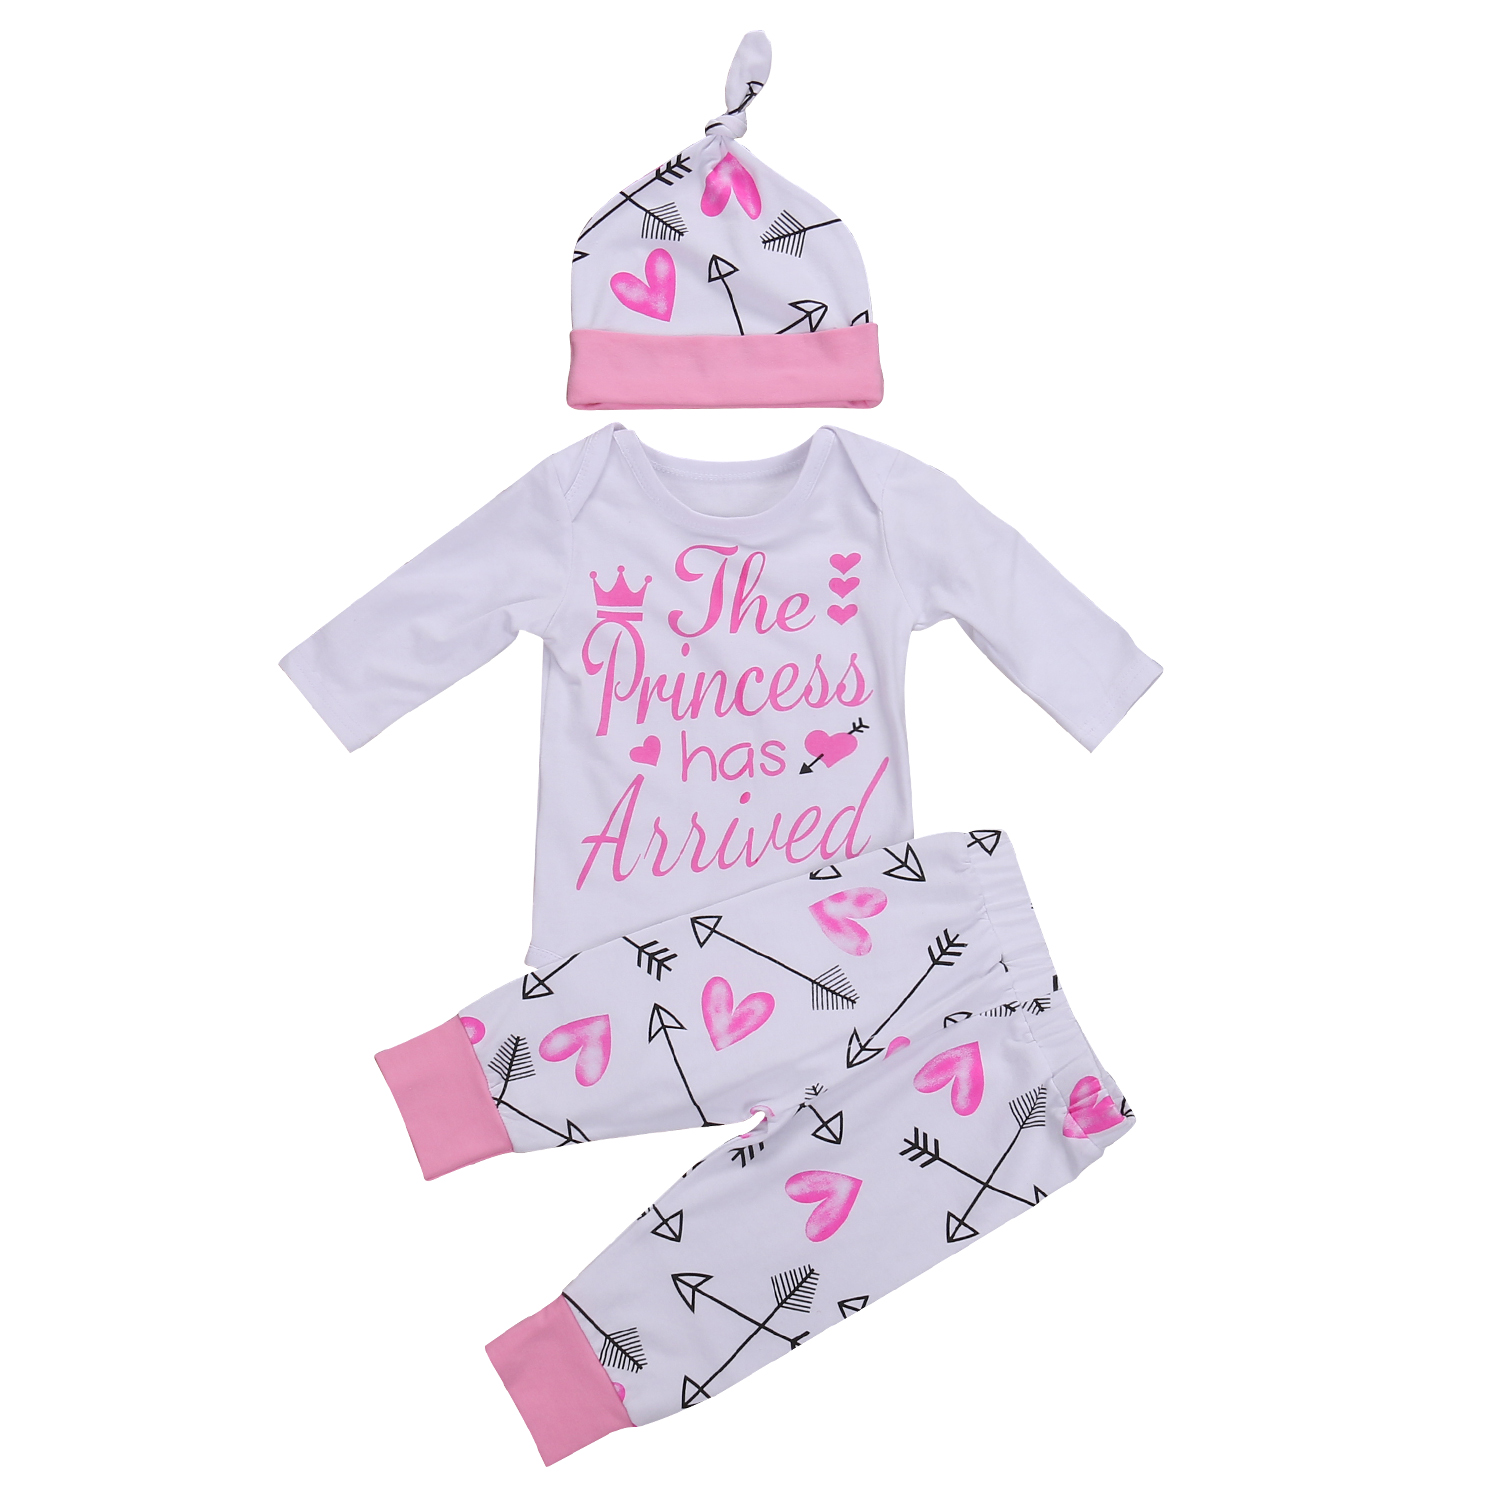 Autumn Toddler Newborn Baby Girls Clothes Letter Print Romper Jumpsuit+Long Pants Hat Outfit Cute Cotton Clothing 3pcs 0-24M fashion 2pcs set newborn baby girls jumpsuit toddler girls flower pattern outfit clothes romper bodysuit pants